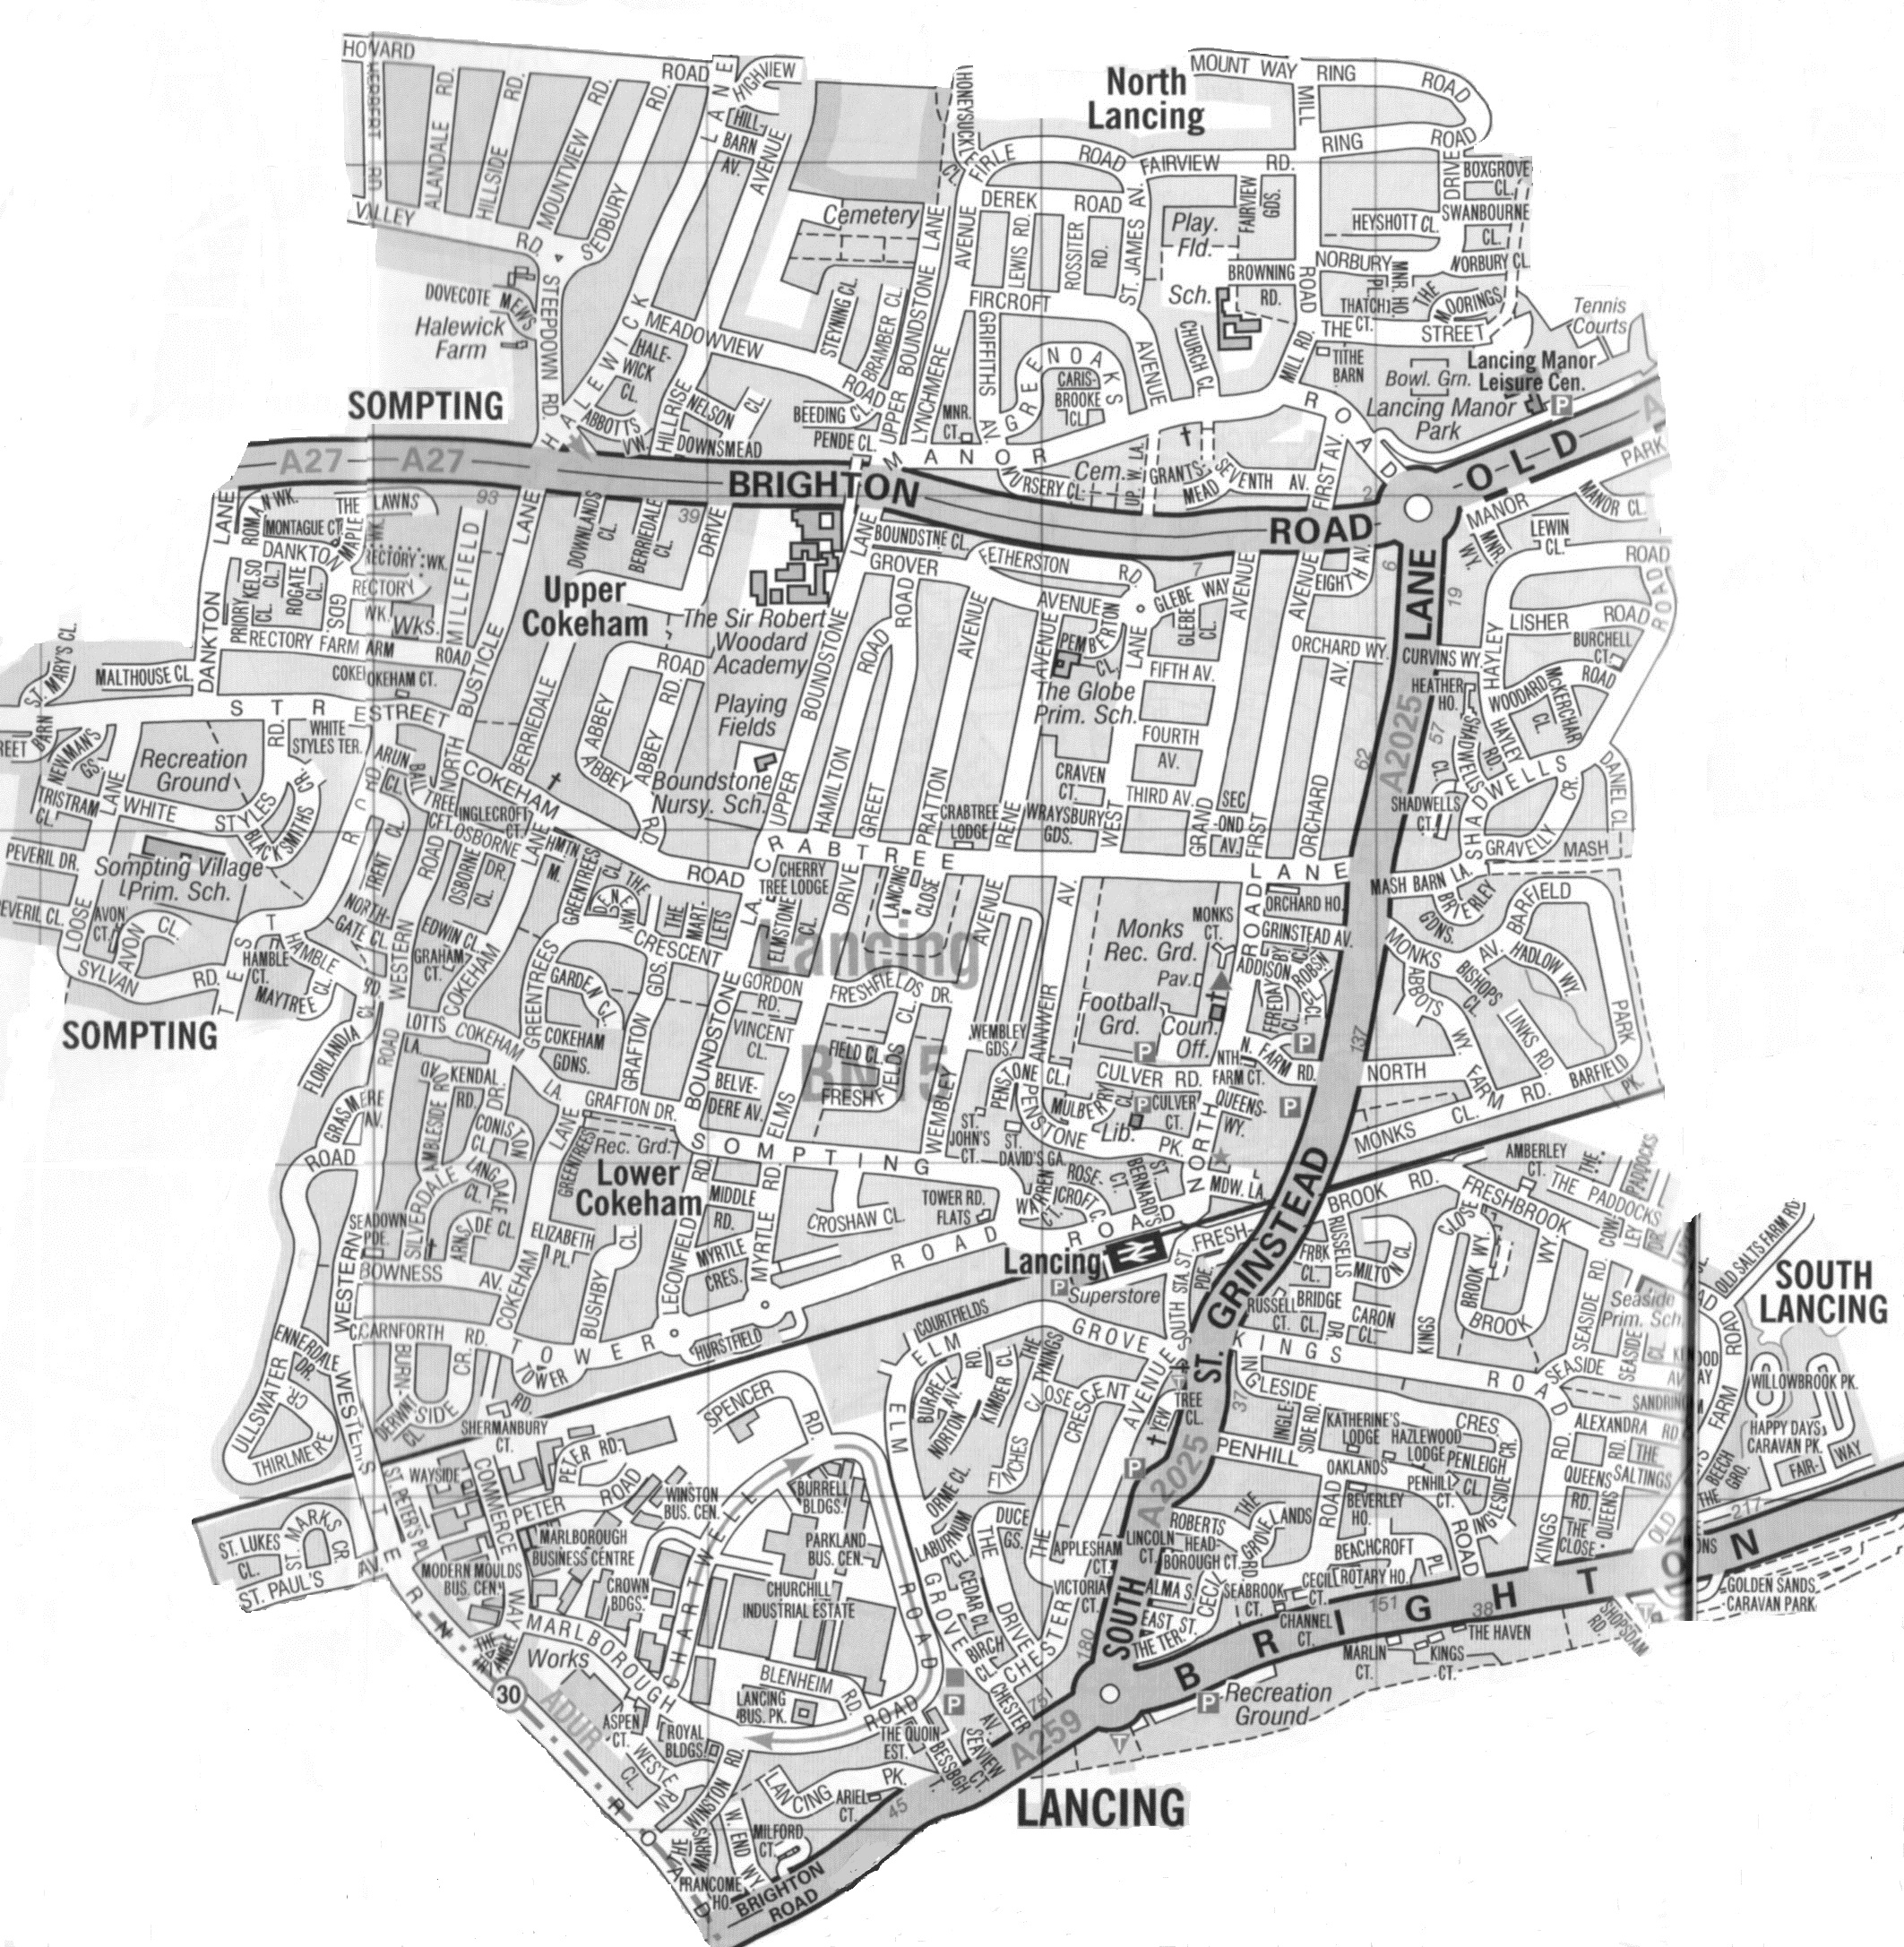 Worthing Direct Leaflet Distribution Services Lancing & South Lancing delivery area map